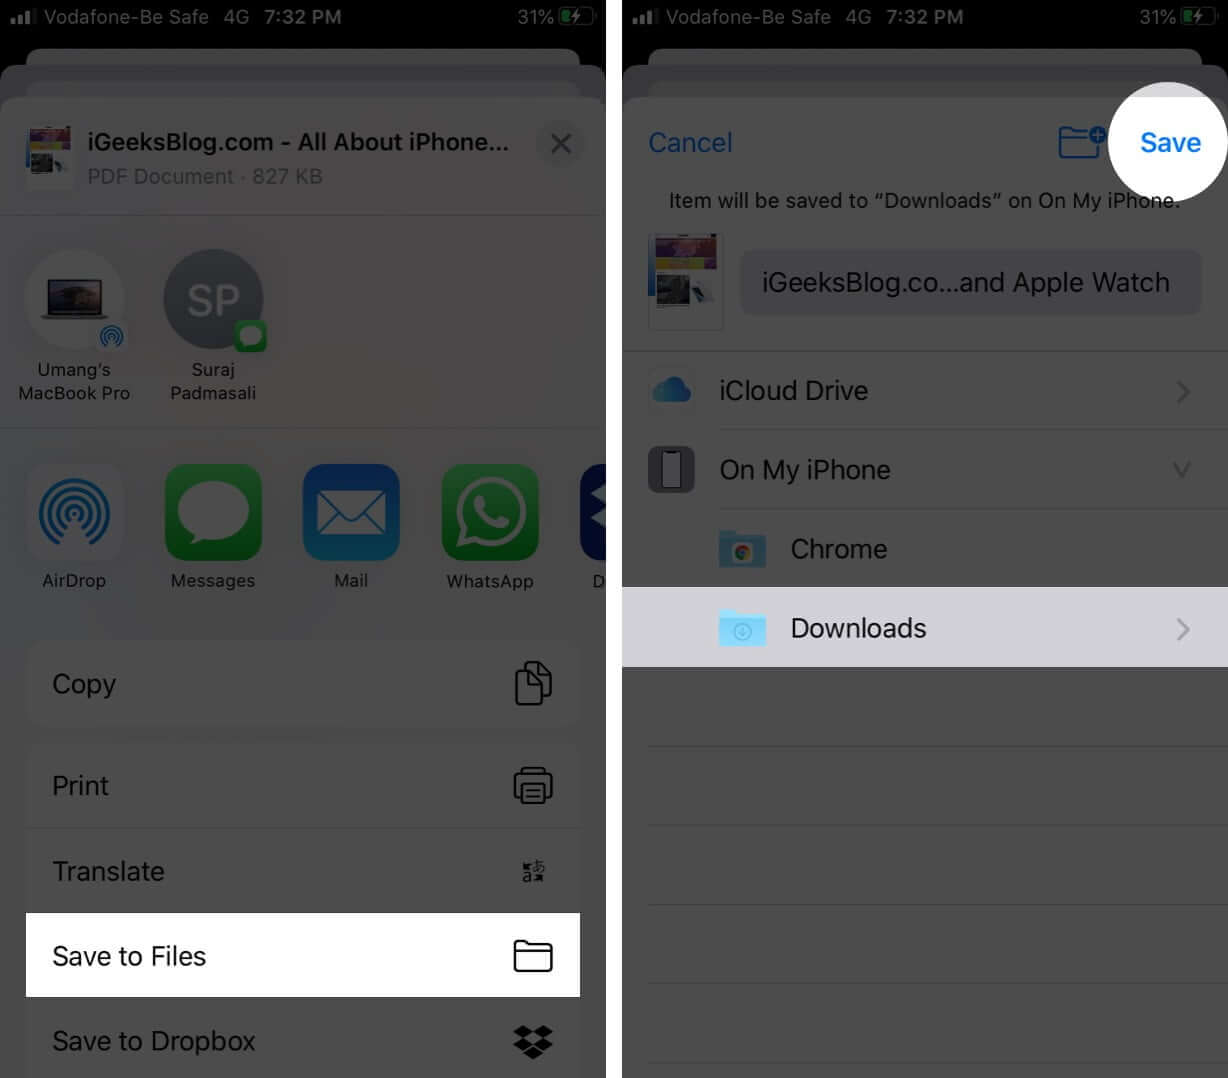 Save Webpage as PDF from Share Sheet on iPhone